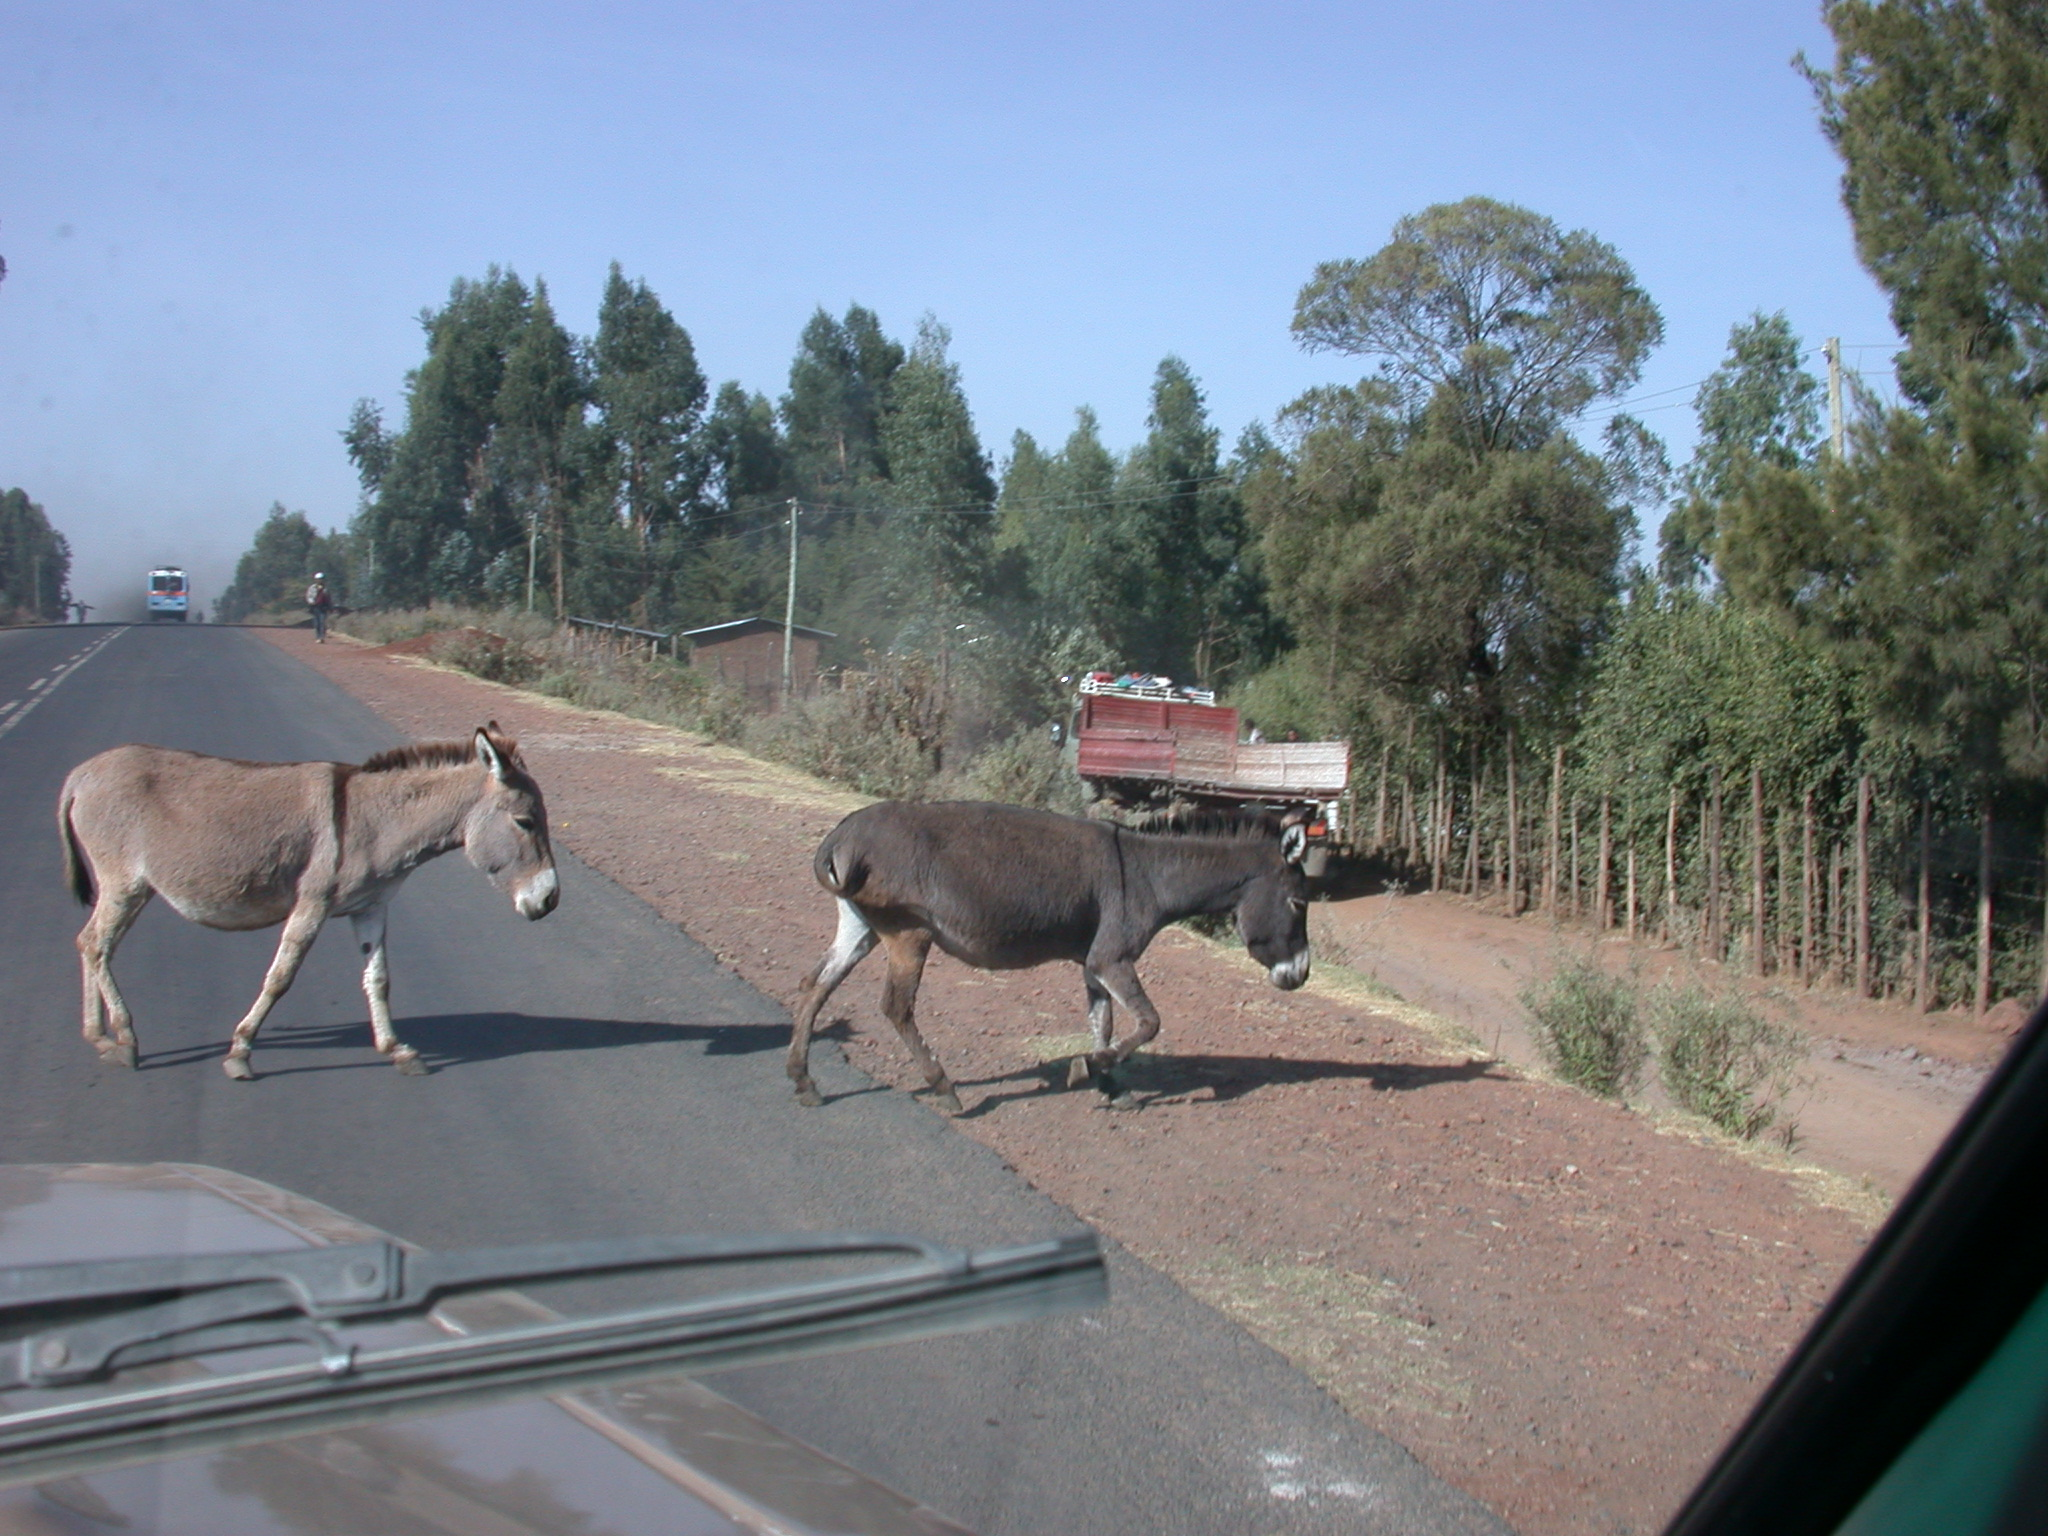 Donkeys Block Road, Route From Addis Ababa to Melka Kunture, Ethiopia